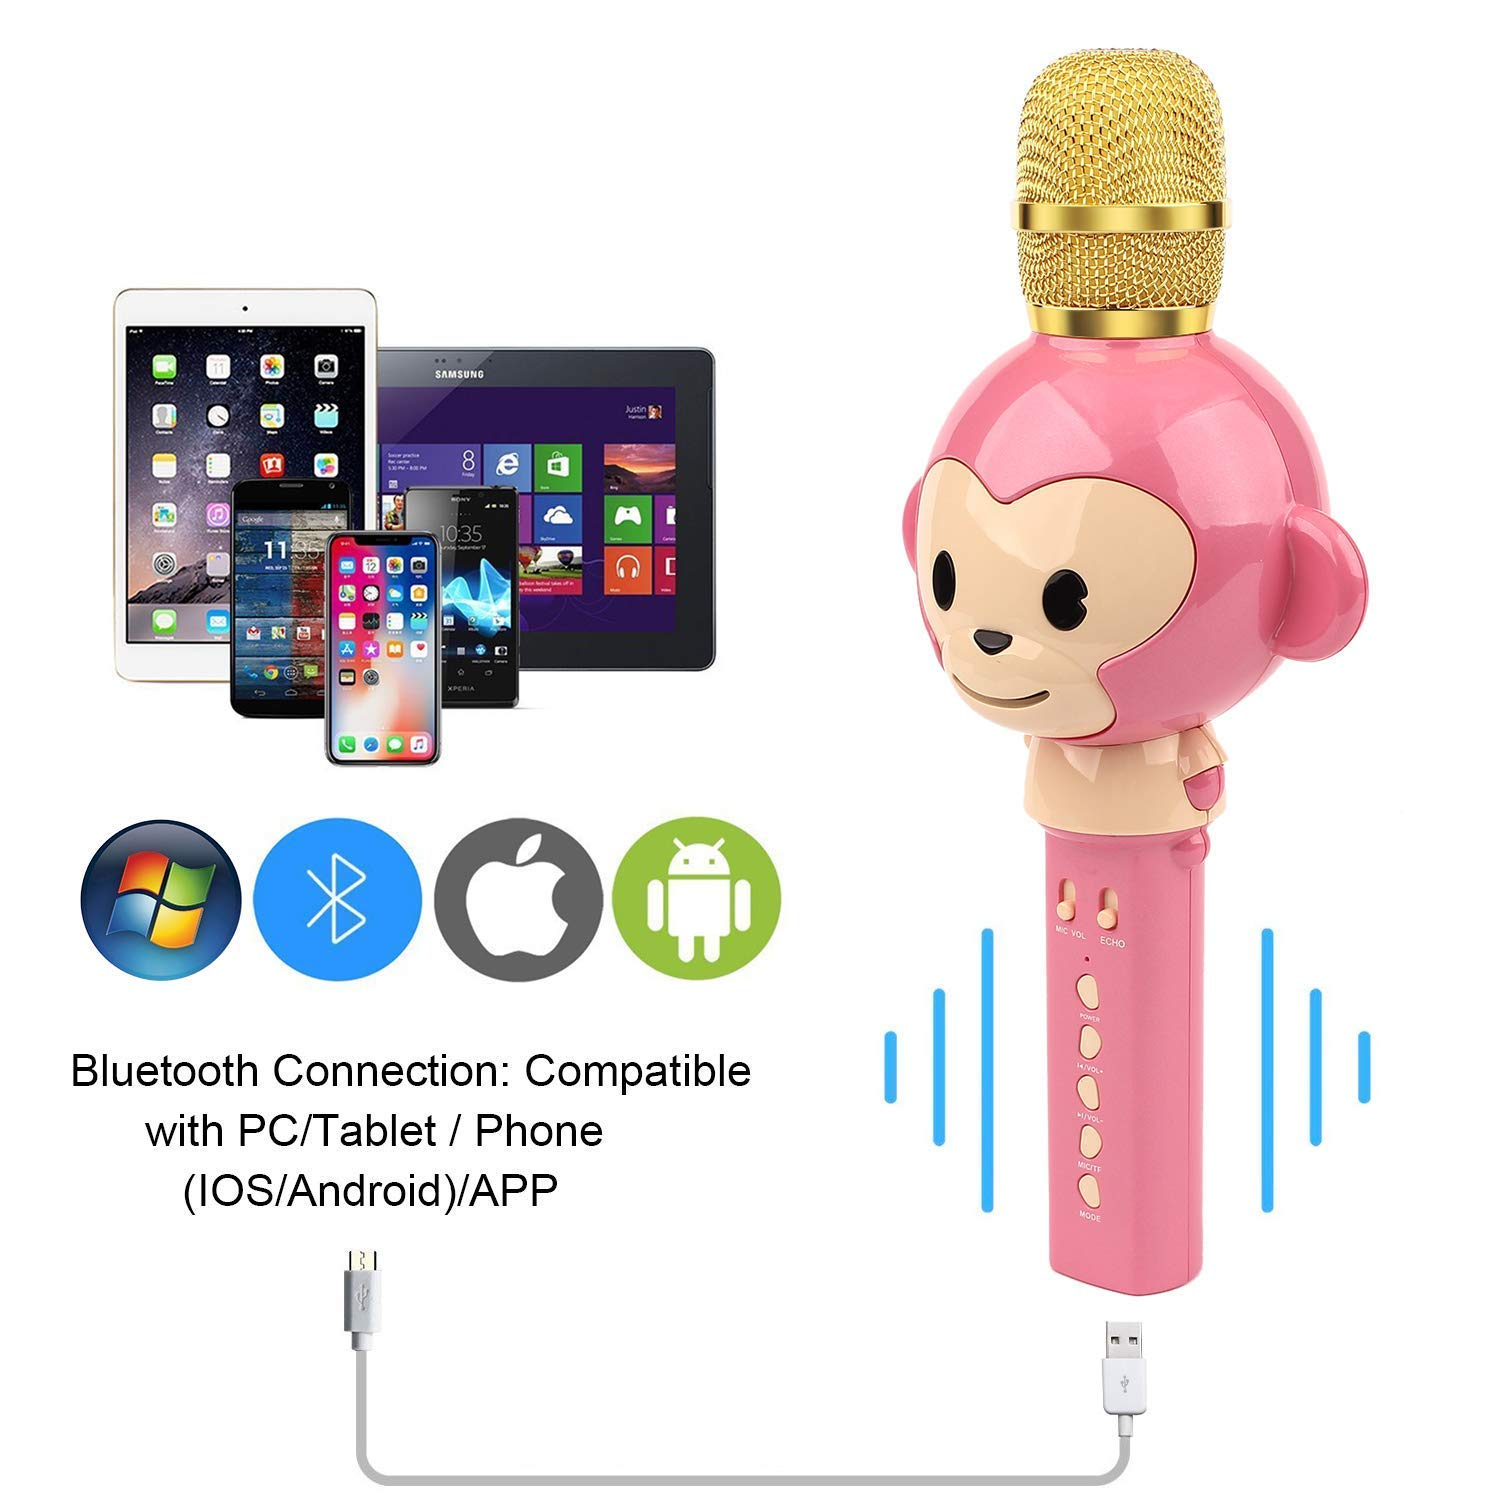 LingHui Kids Microphone Wireless Bluetooth Karaoke Microphone , 3-in-1 Portable Handheld Karaoke Mic Home Party Birthday Speaker Machine for iPhone/Android/iPad/Sony,PC and All Smartphone (Pink) by LingHui (Image #5)